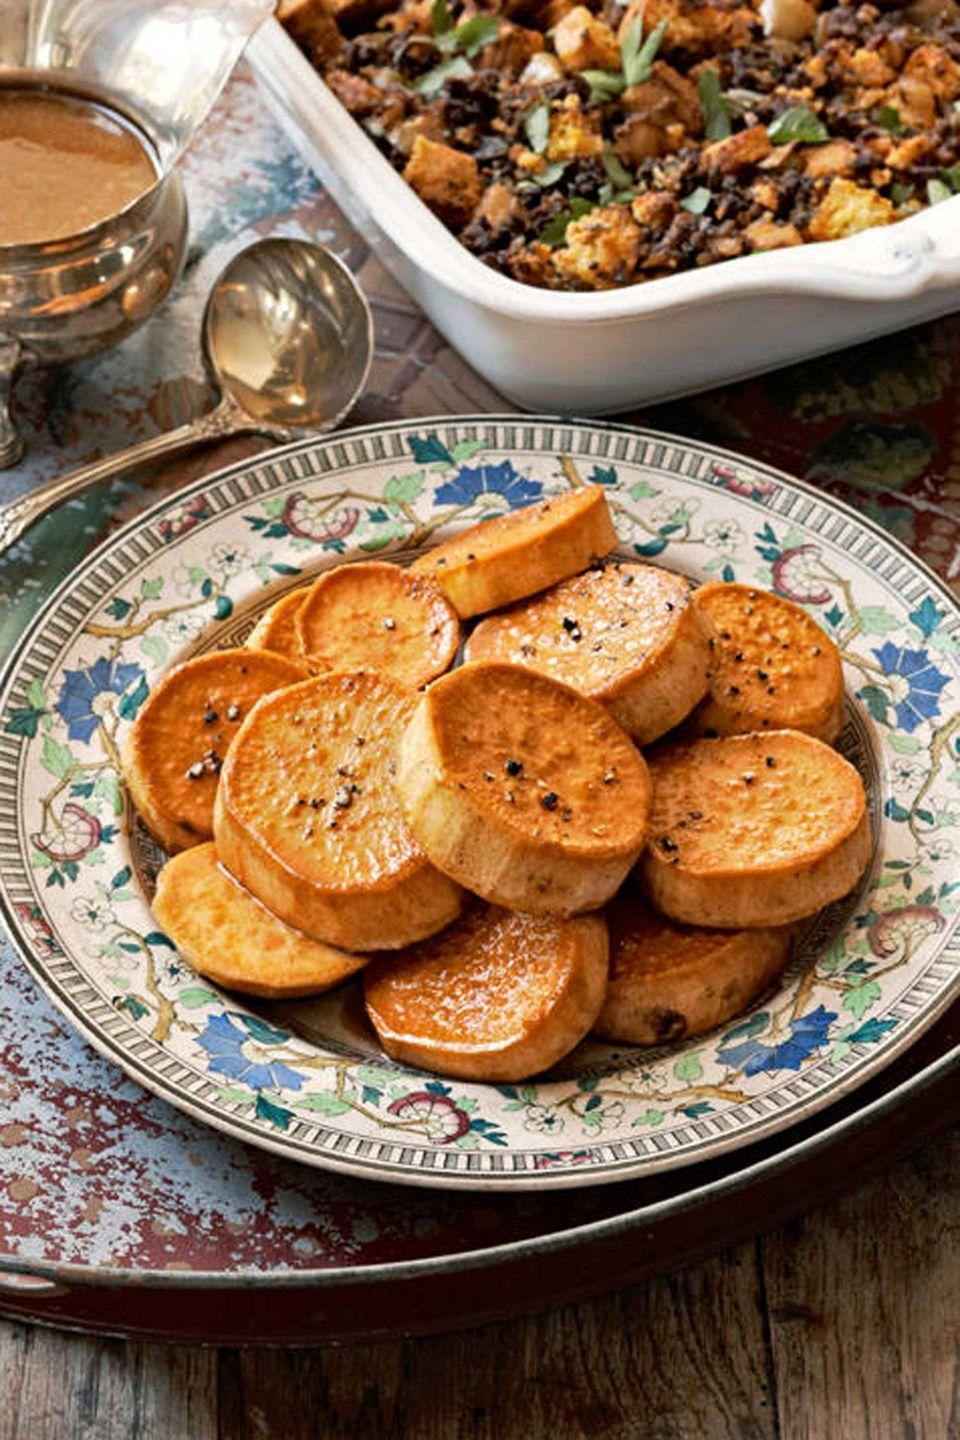 """<p>A Thanksgiving meal wouldn't be complete without this sweet side dish.</p><p><strong><a href=""""https://www.countryliving.com/food-drinks/recipes/a3056/lemon-glazed-sweet-potatoes-recipe/"""" rel=""""nofollow noopener"""" target=""""_blank"""" data-ylk=""""slk:Get the recipe"""" class=""""link rapid-noclick-resp"""">Get the recipe</a>.</strong></p>"""